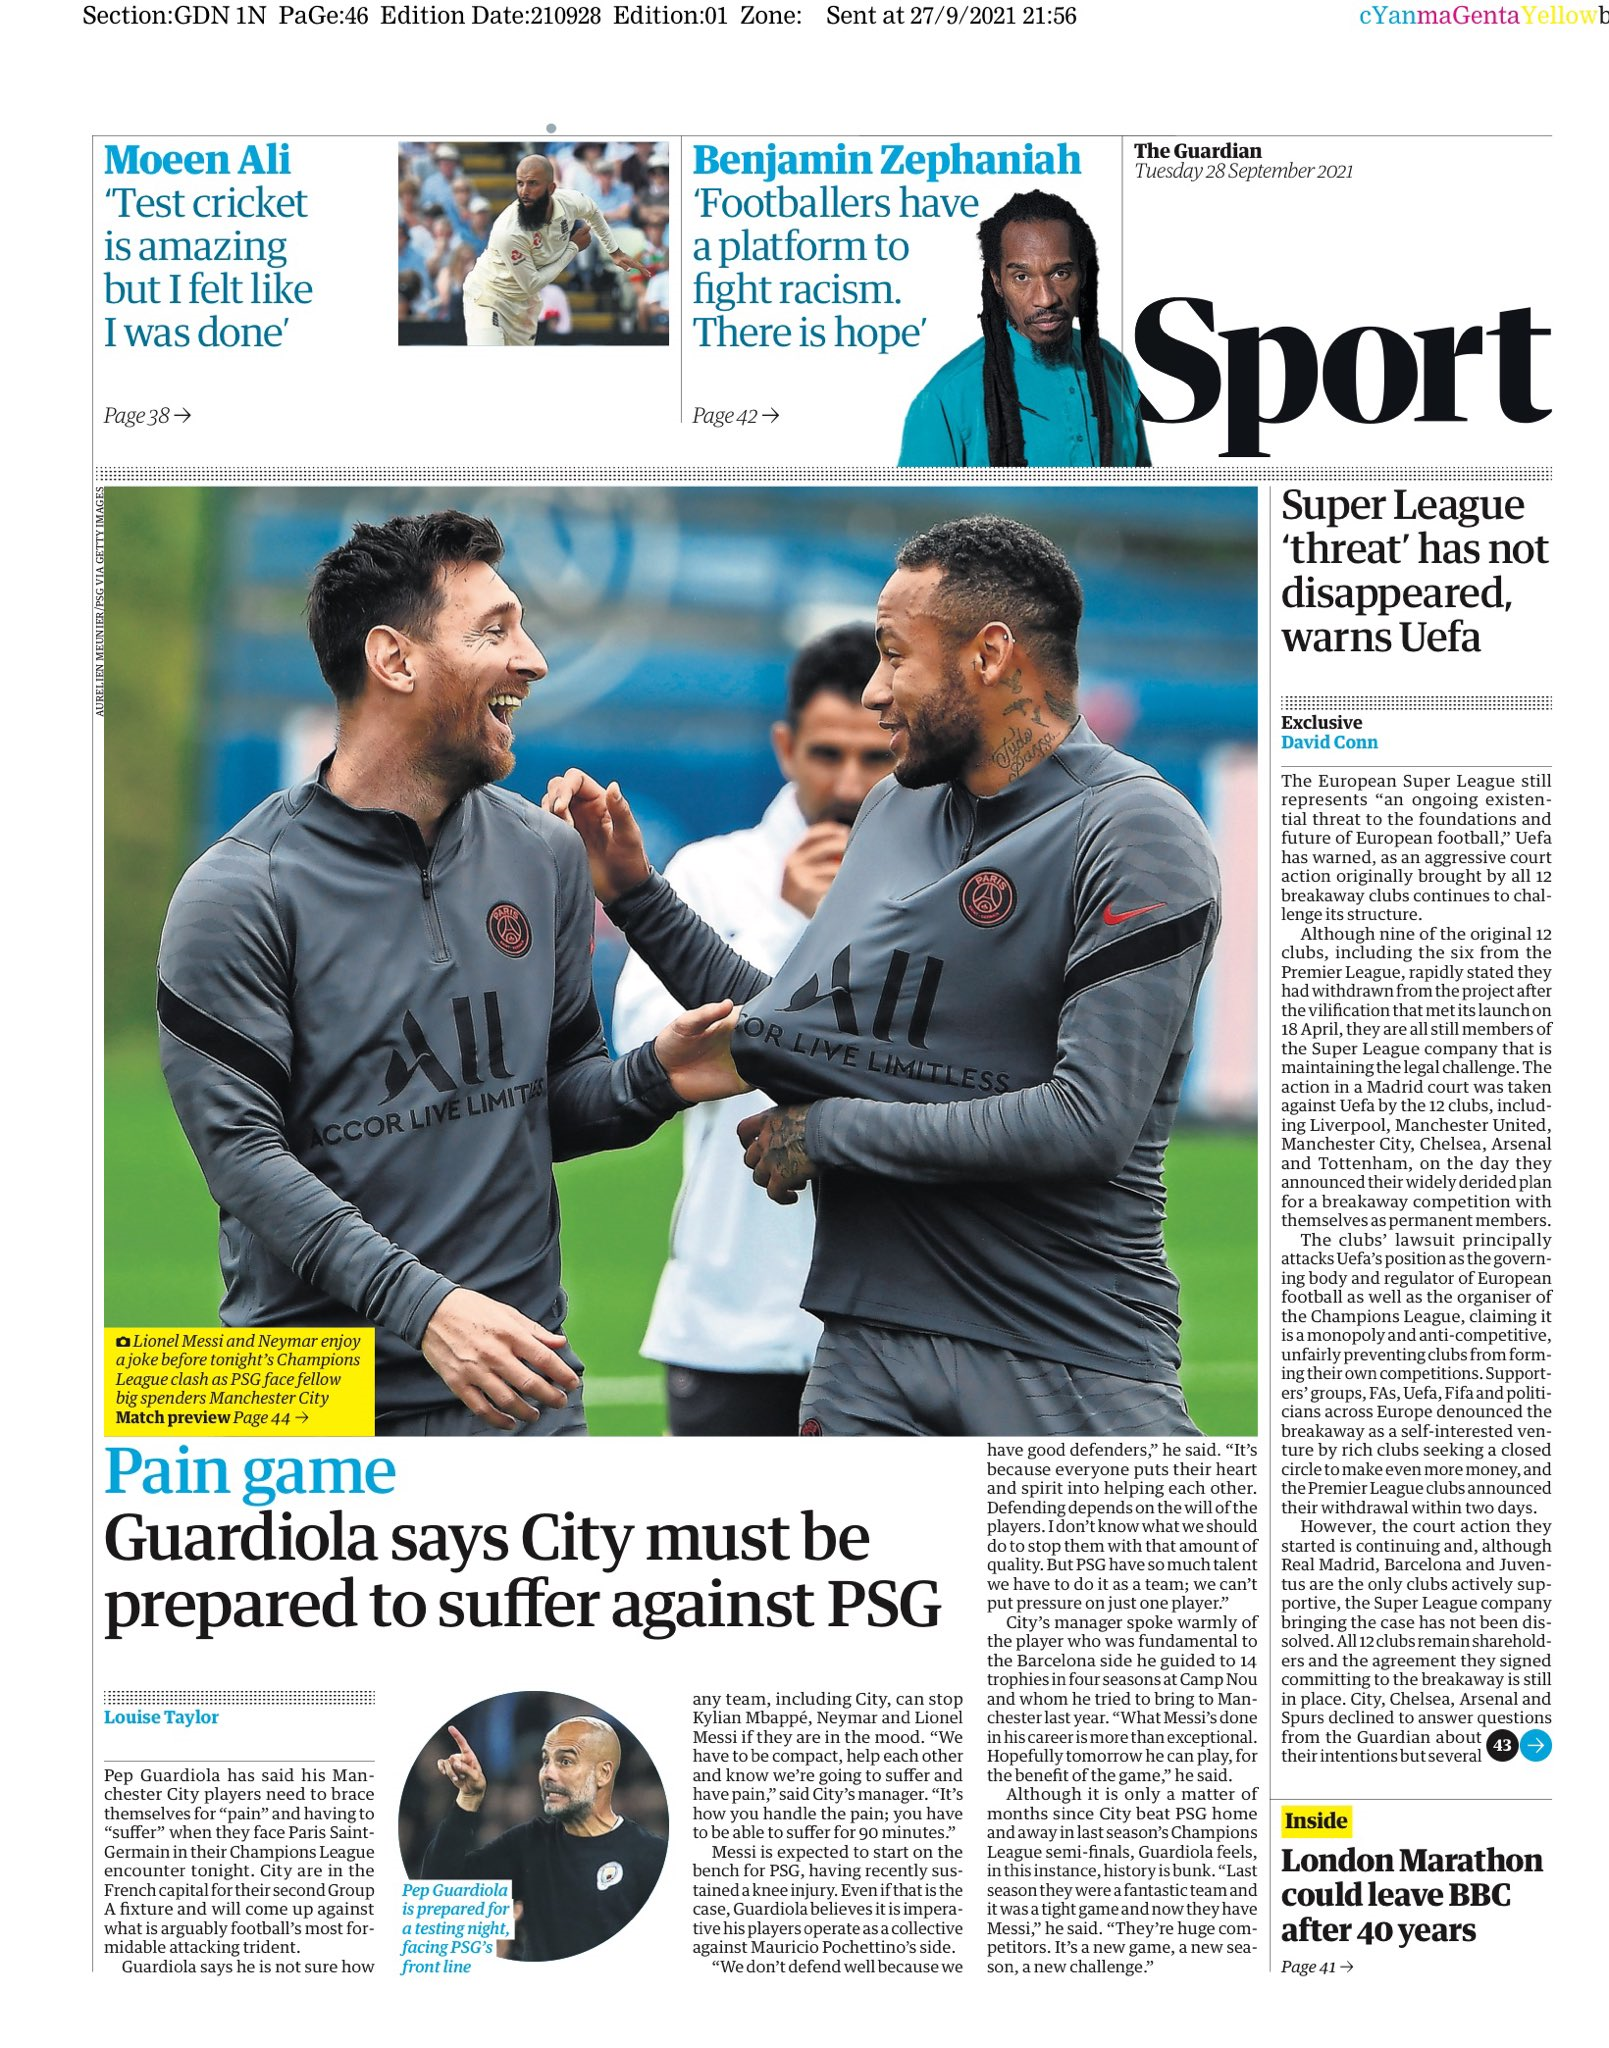 GUARDIAN SPORT: Pain game as City take on PSG